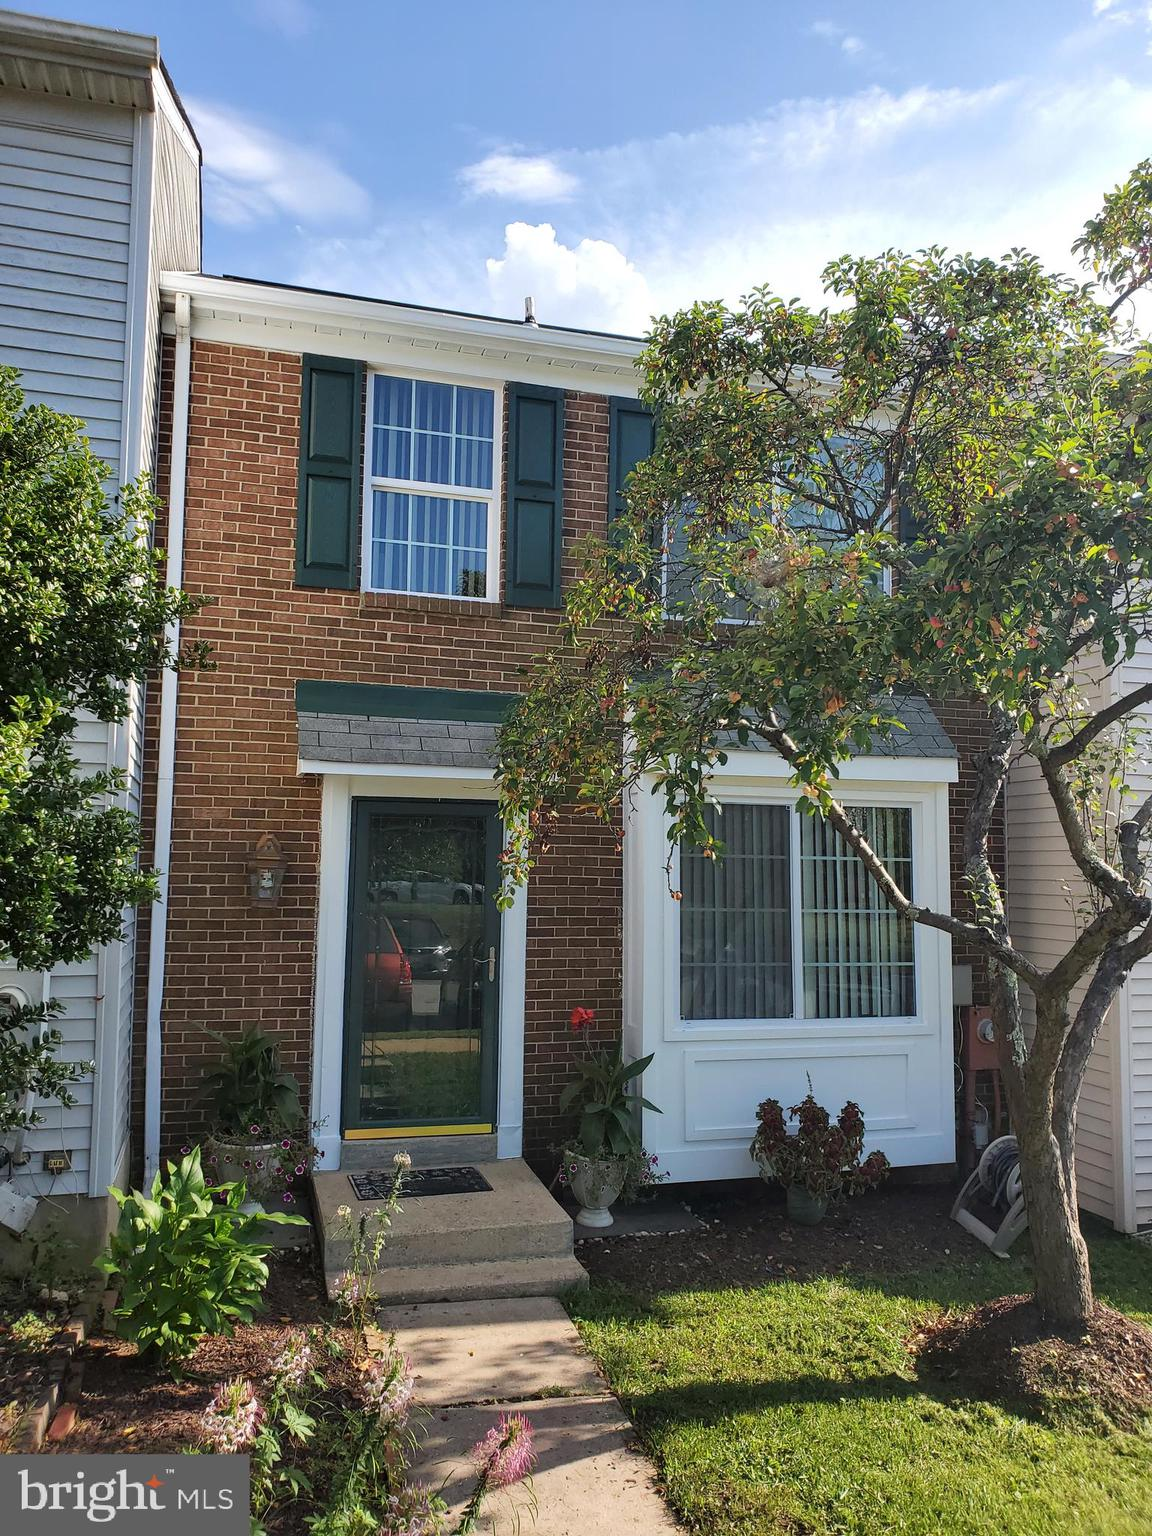 Wonderful spacious 3 bedroom 3 and a 1/2 bath townhouse.   The home features hardwood floors, a finished walk out basement, large deck with stairs to the backyard, fresh paint, ample storage space and so much more.  Won't last long.  Hurry to see this one !